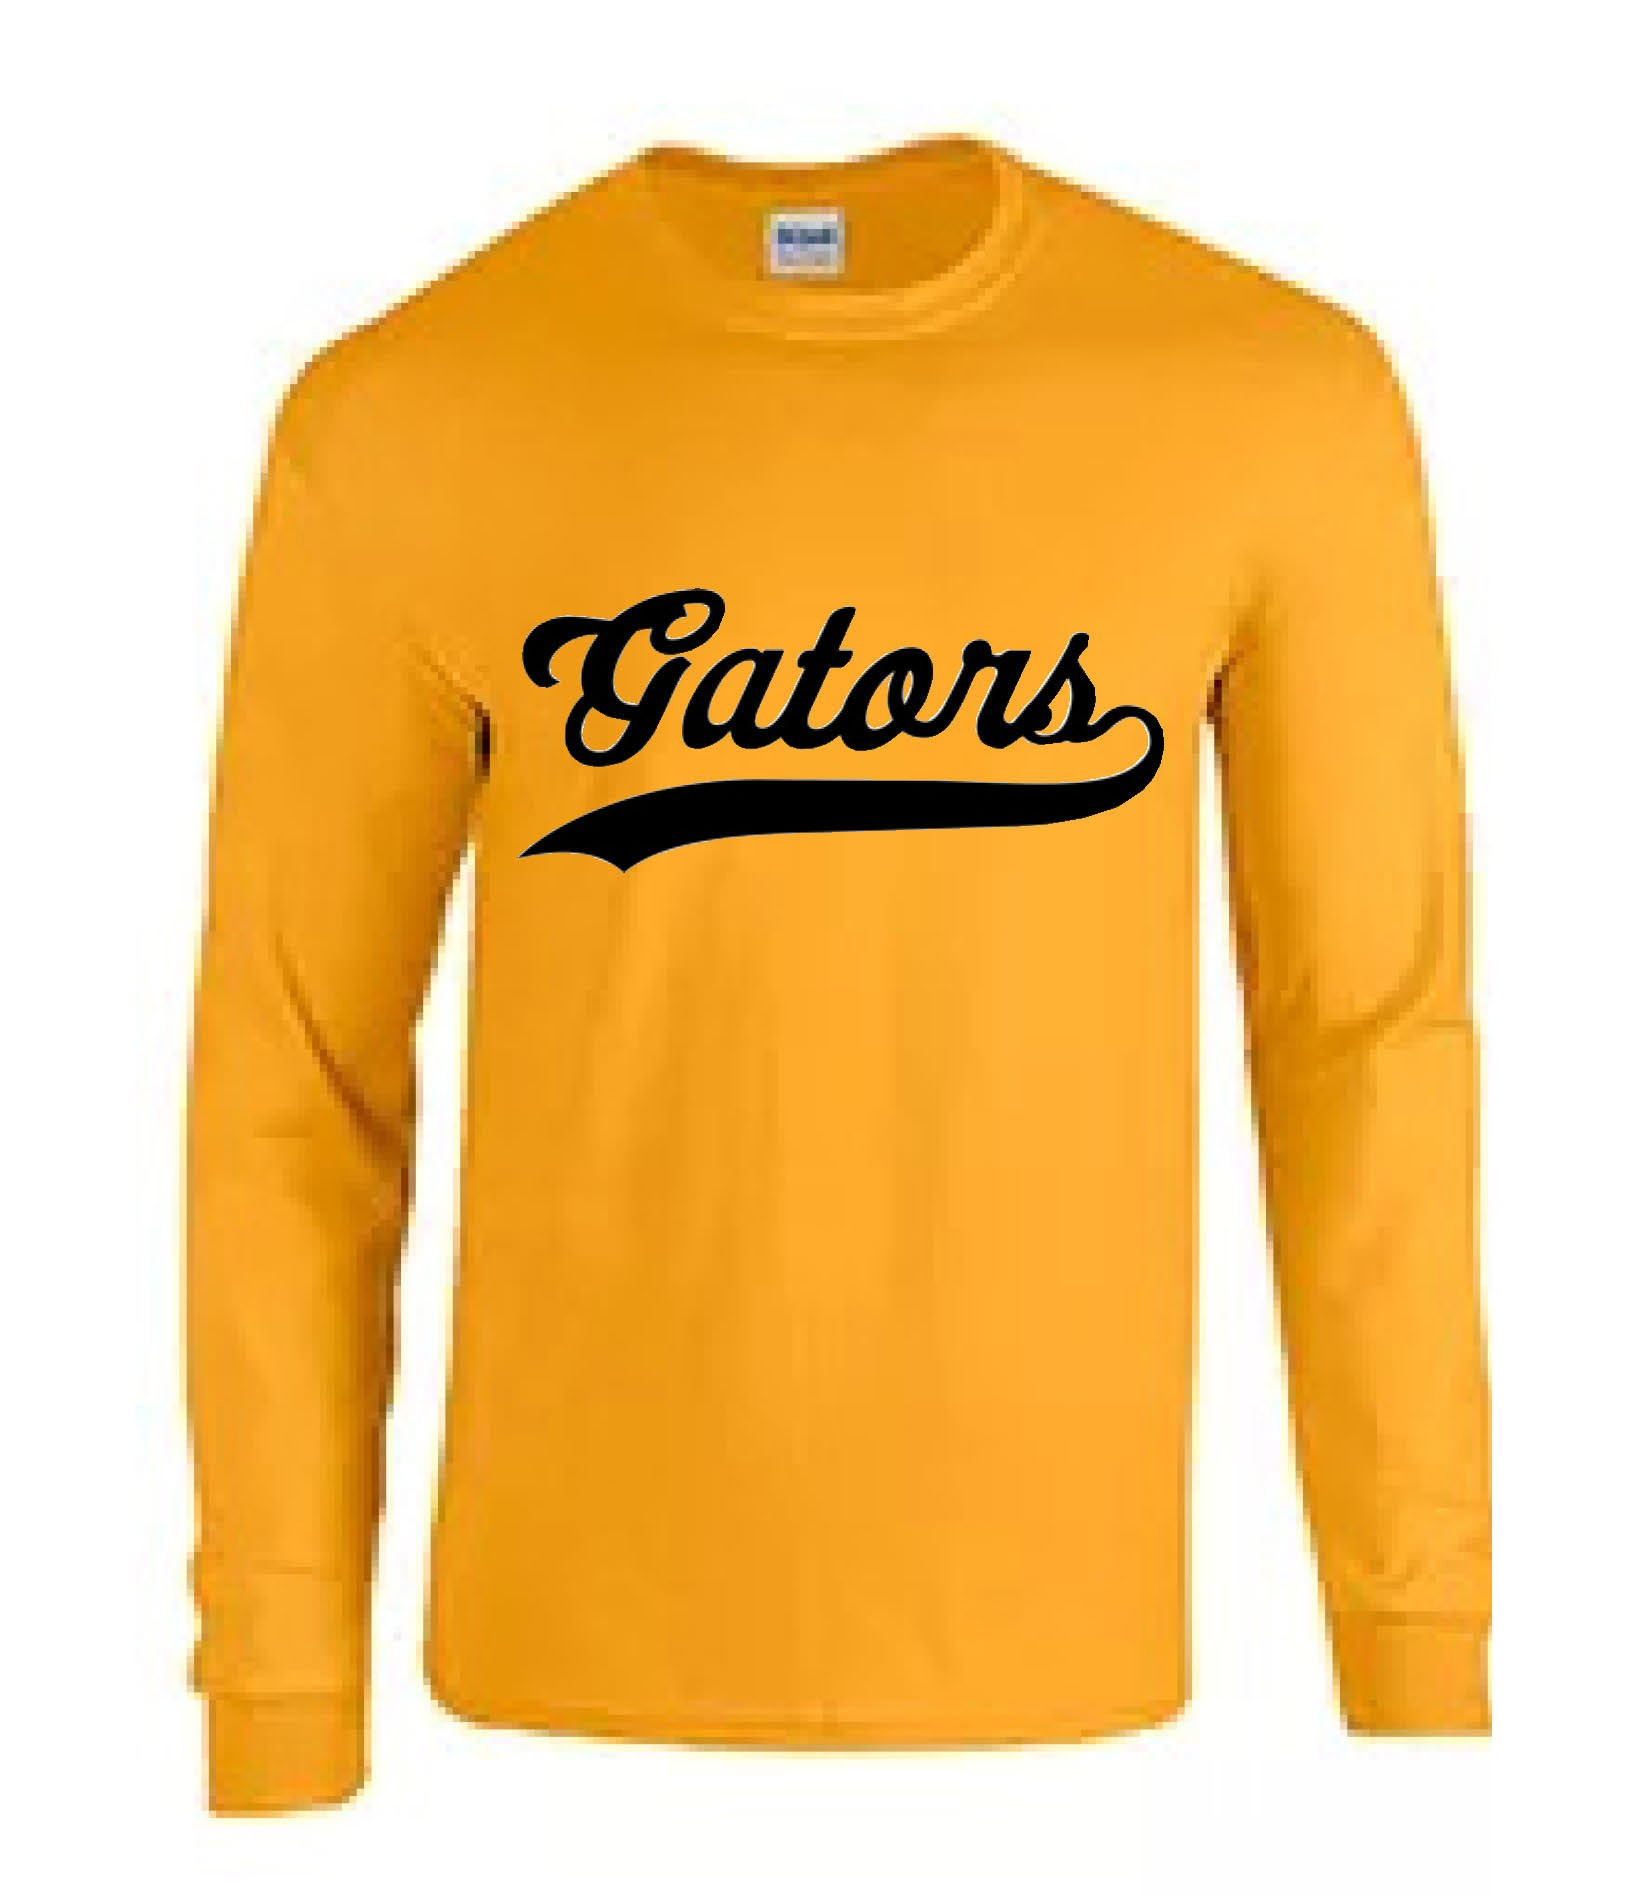 Albany Gators T-Shirt